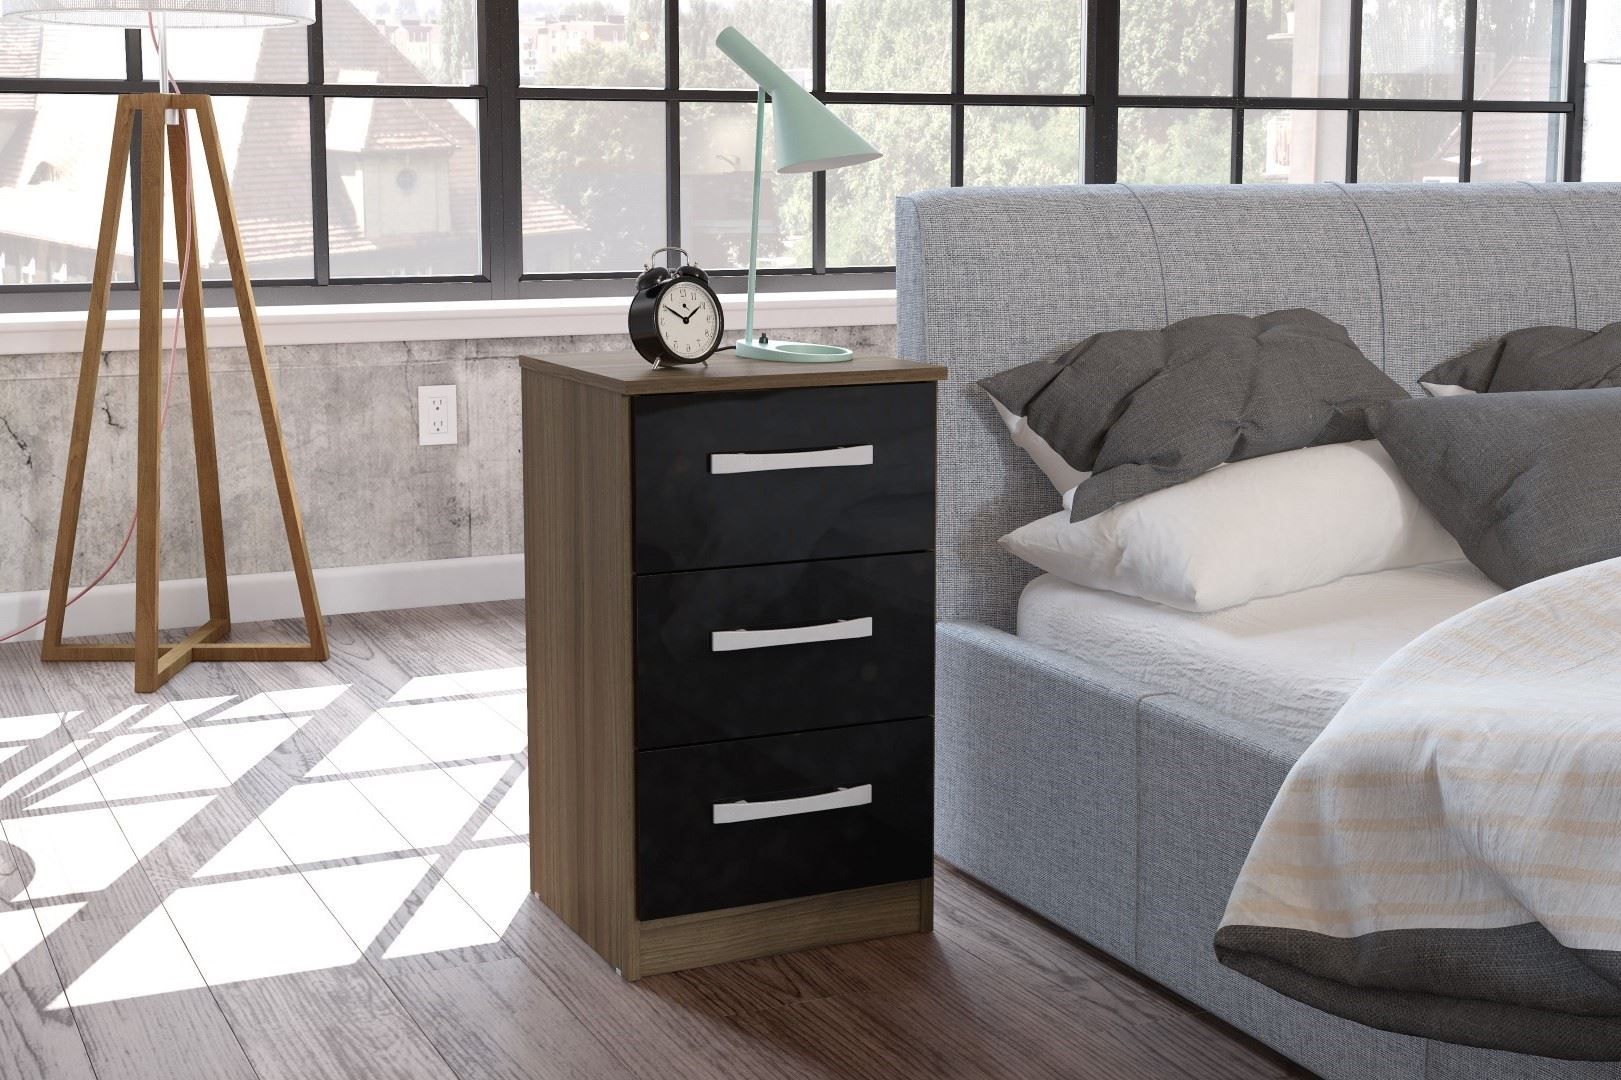 Lynx High Gloss Black and Walnut 3 drawer bedside chest of drawers new